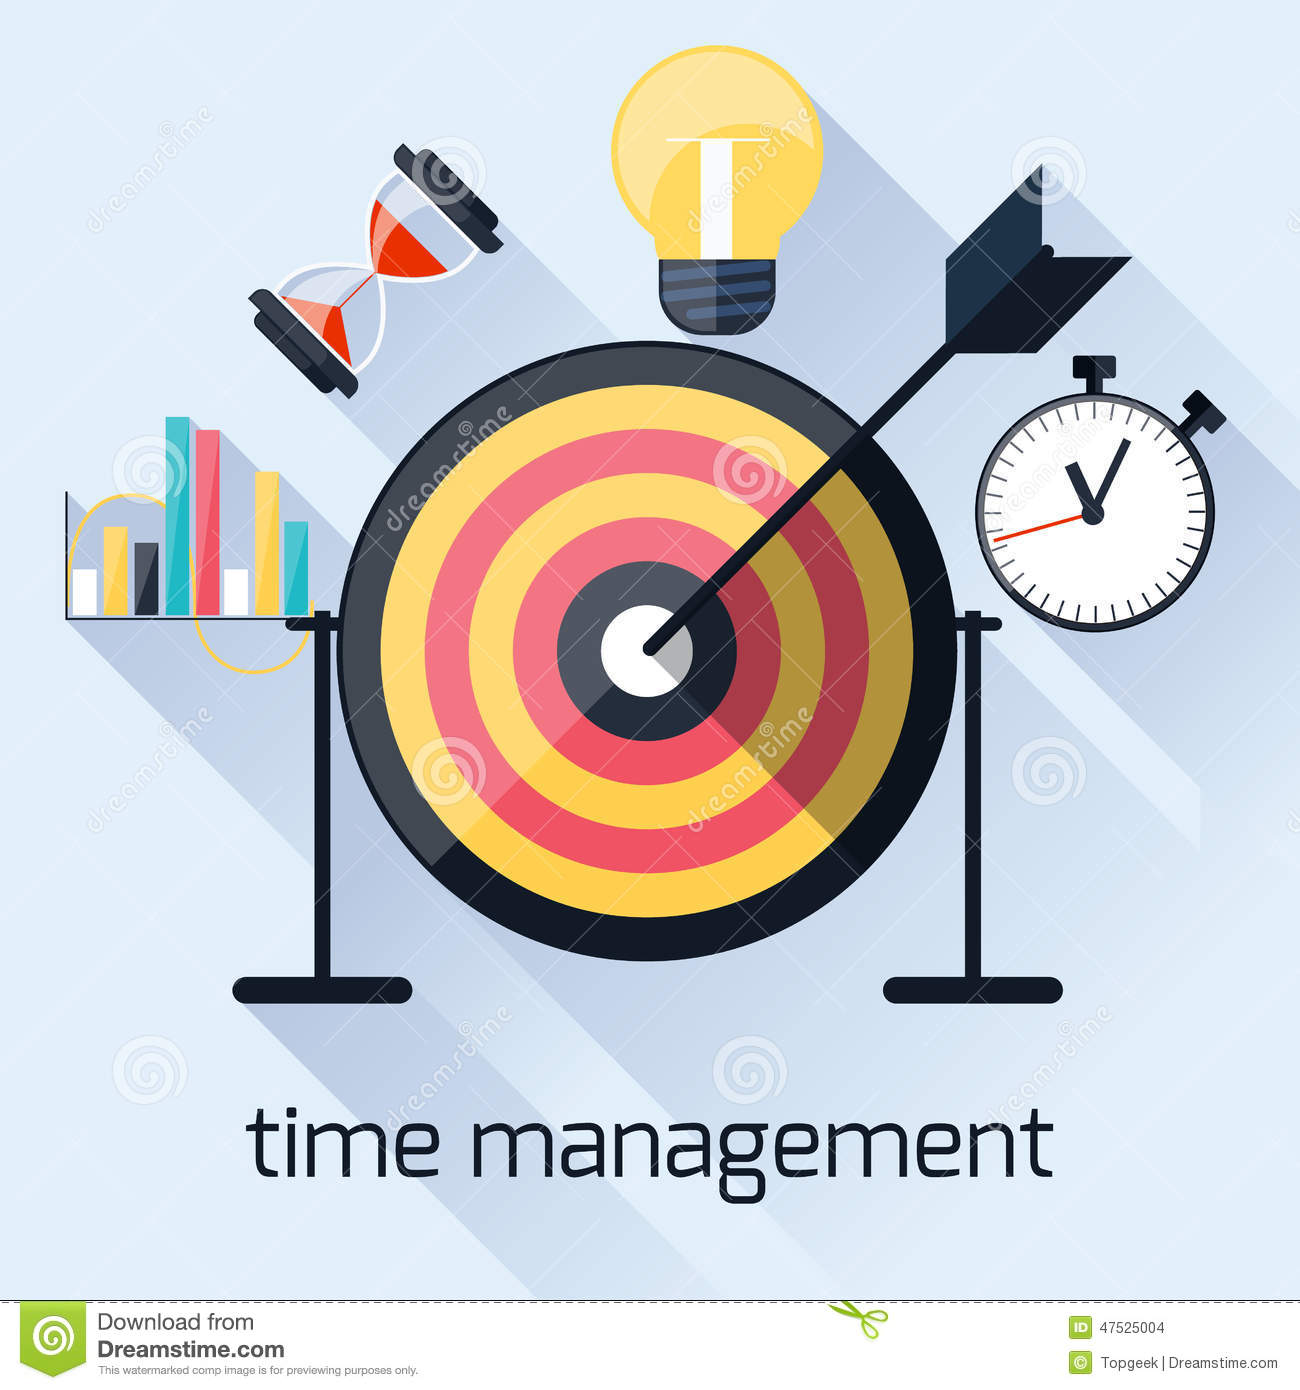 how to love time management